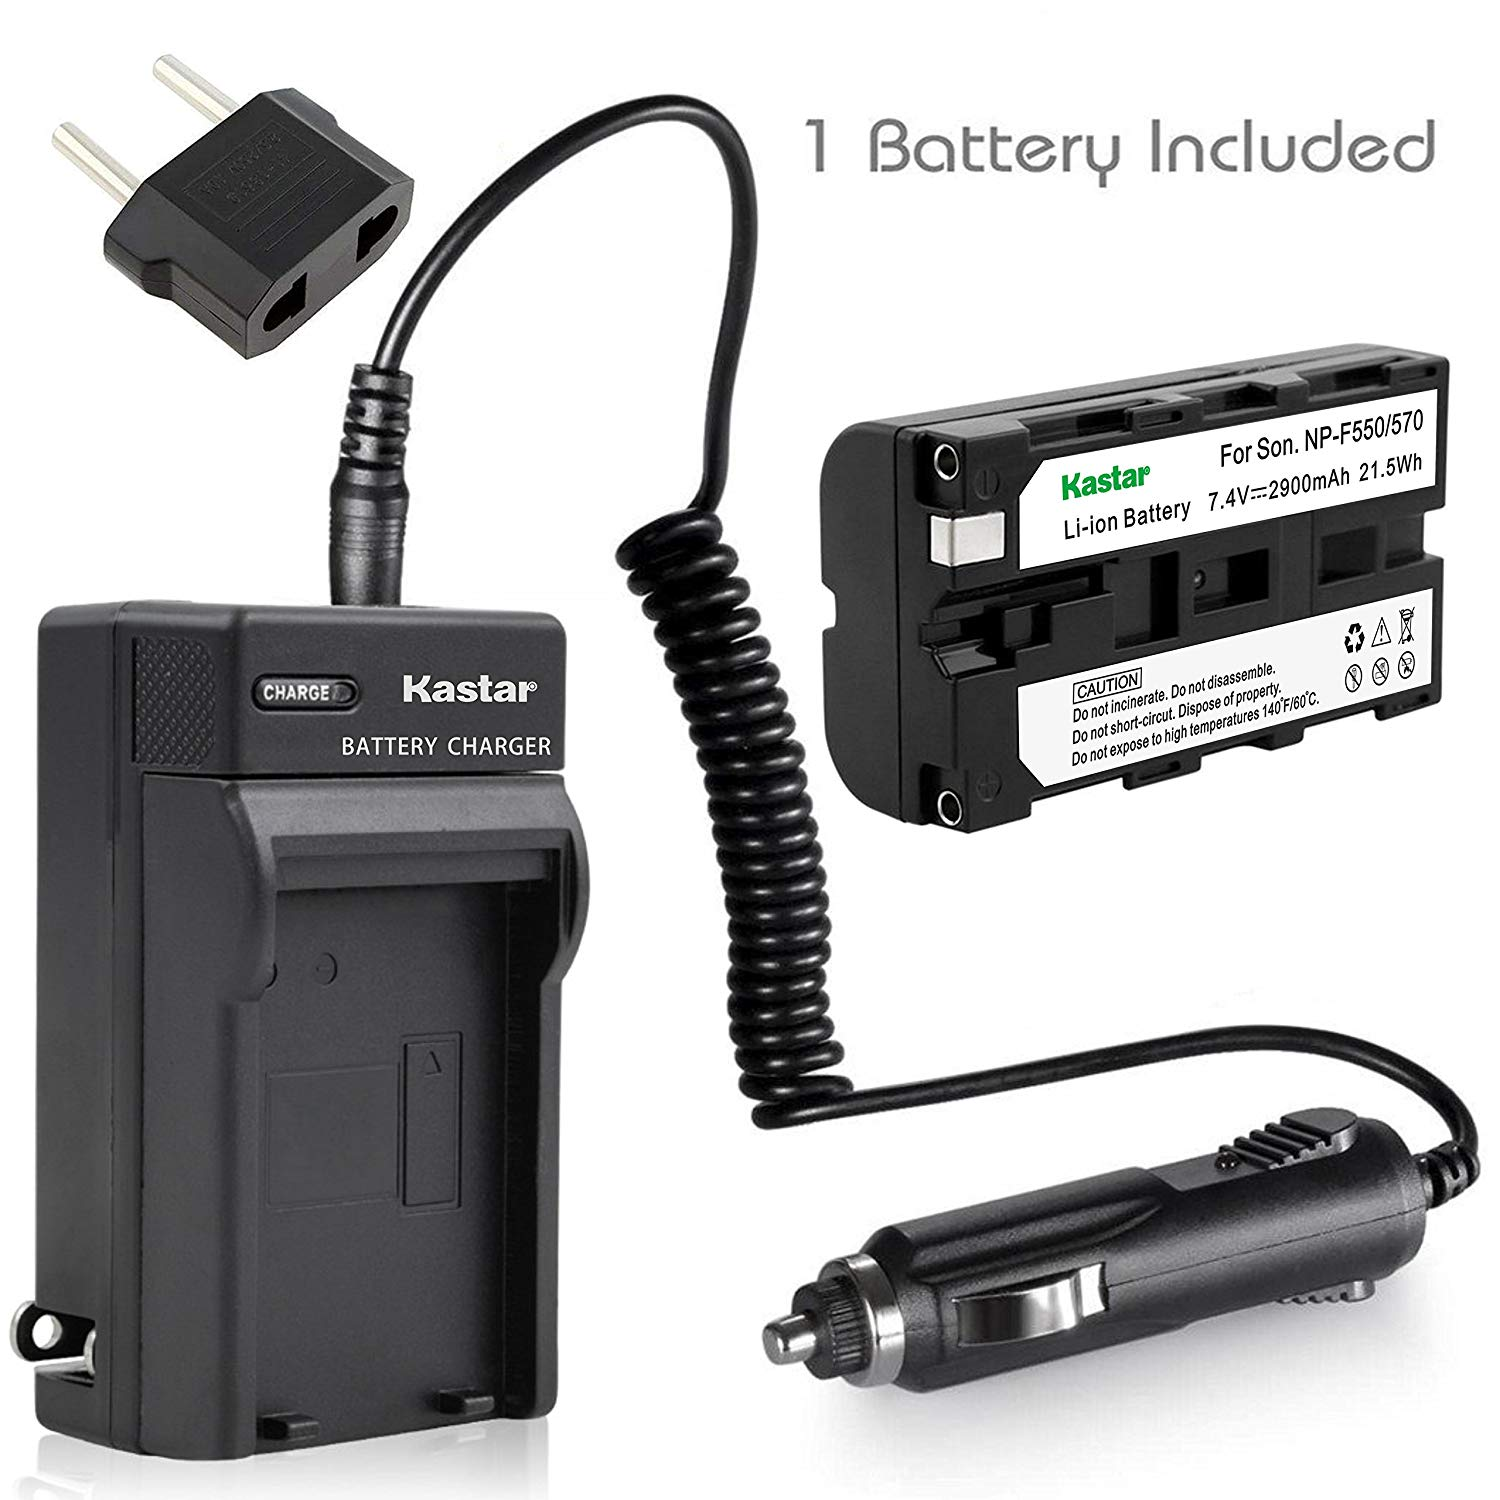 Kastar Battery and Charger for NP-F570, NP-F550, NP-F530, NP-F330 and Sony CCD-RV100, CCD-RV200, CCD-SC5, CCD-SC6, DSC-D770, D-V500, EVO-250, GV-A100, GV-A500, HDR-AX2000, HXR-NX5, HXR-NX5U, NEX-FS100